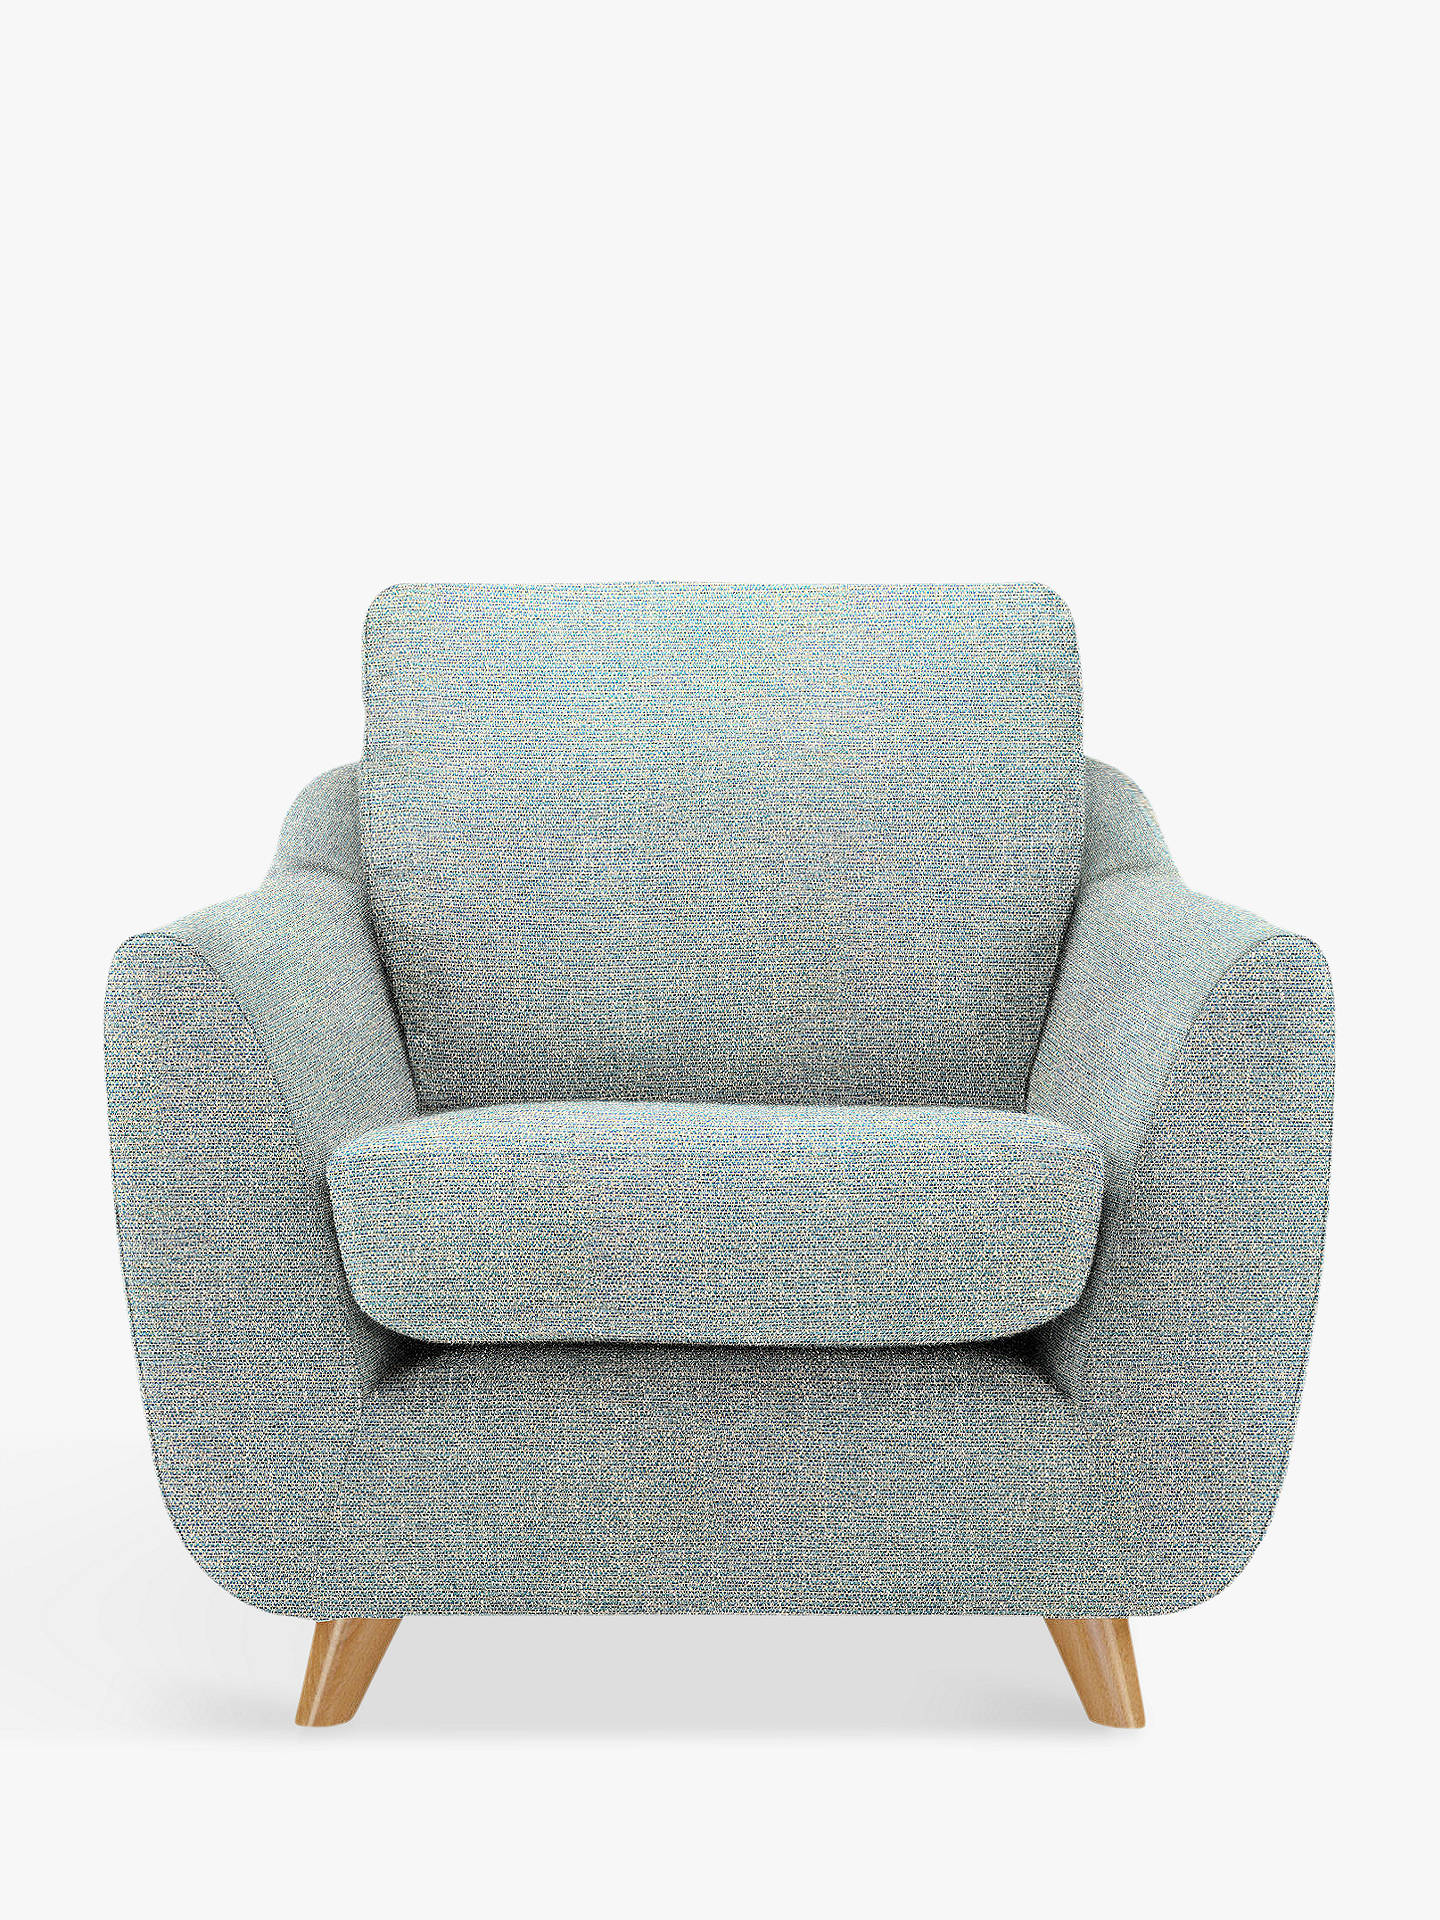 Buy G Plan Vintage The Sixty Seven Armchair, Etch Ink Online at johnlewis.com